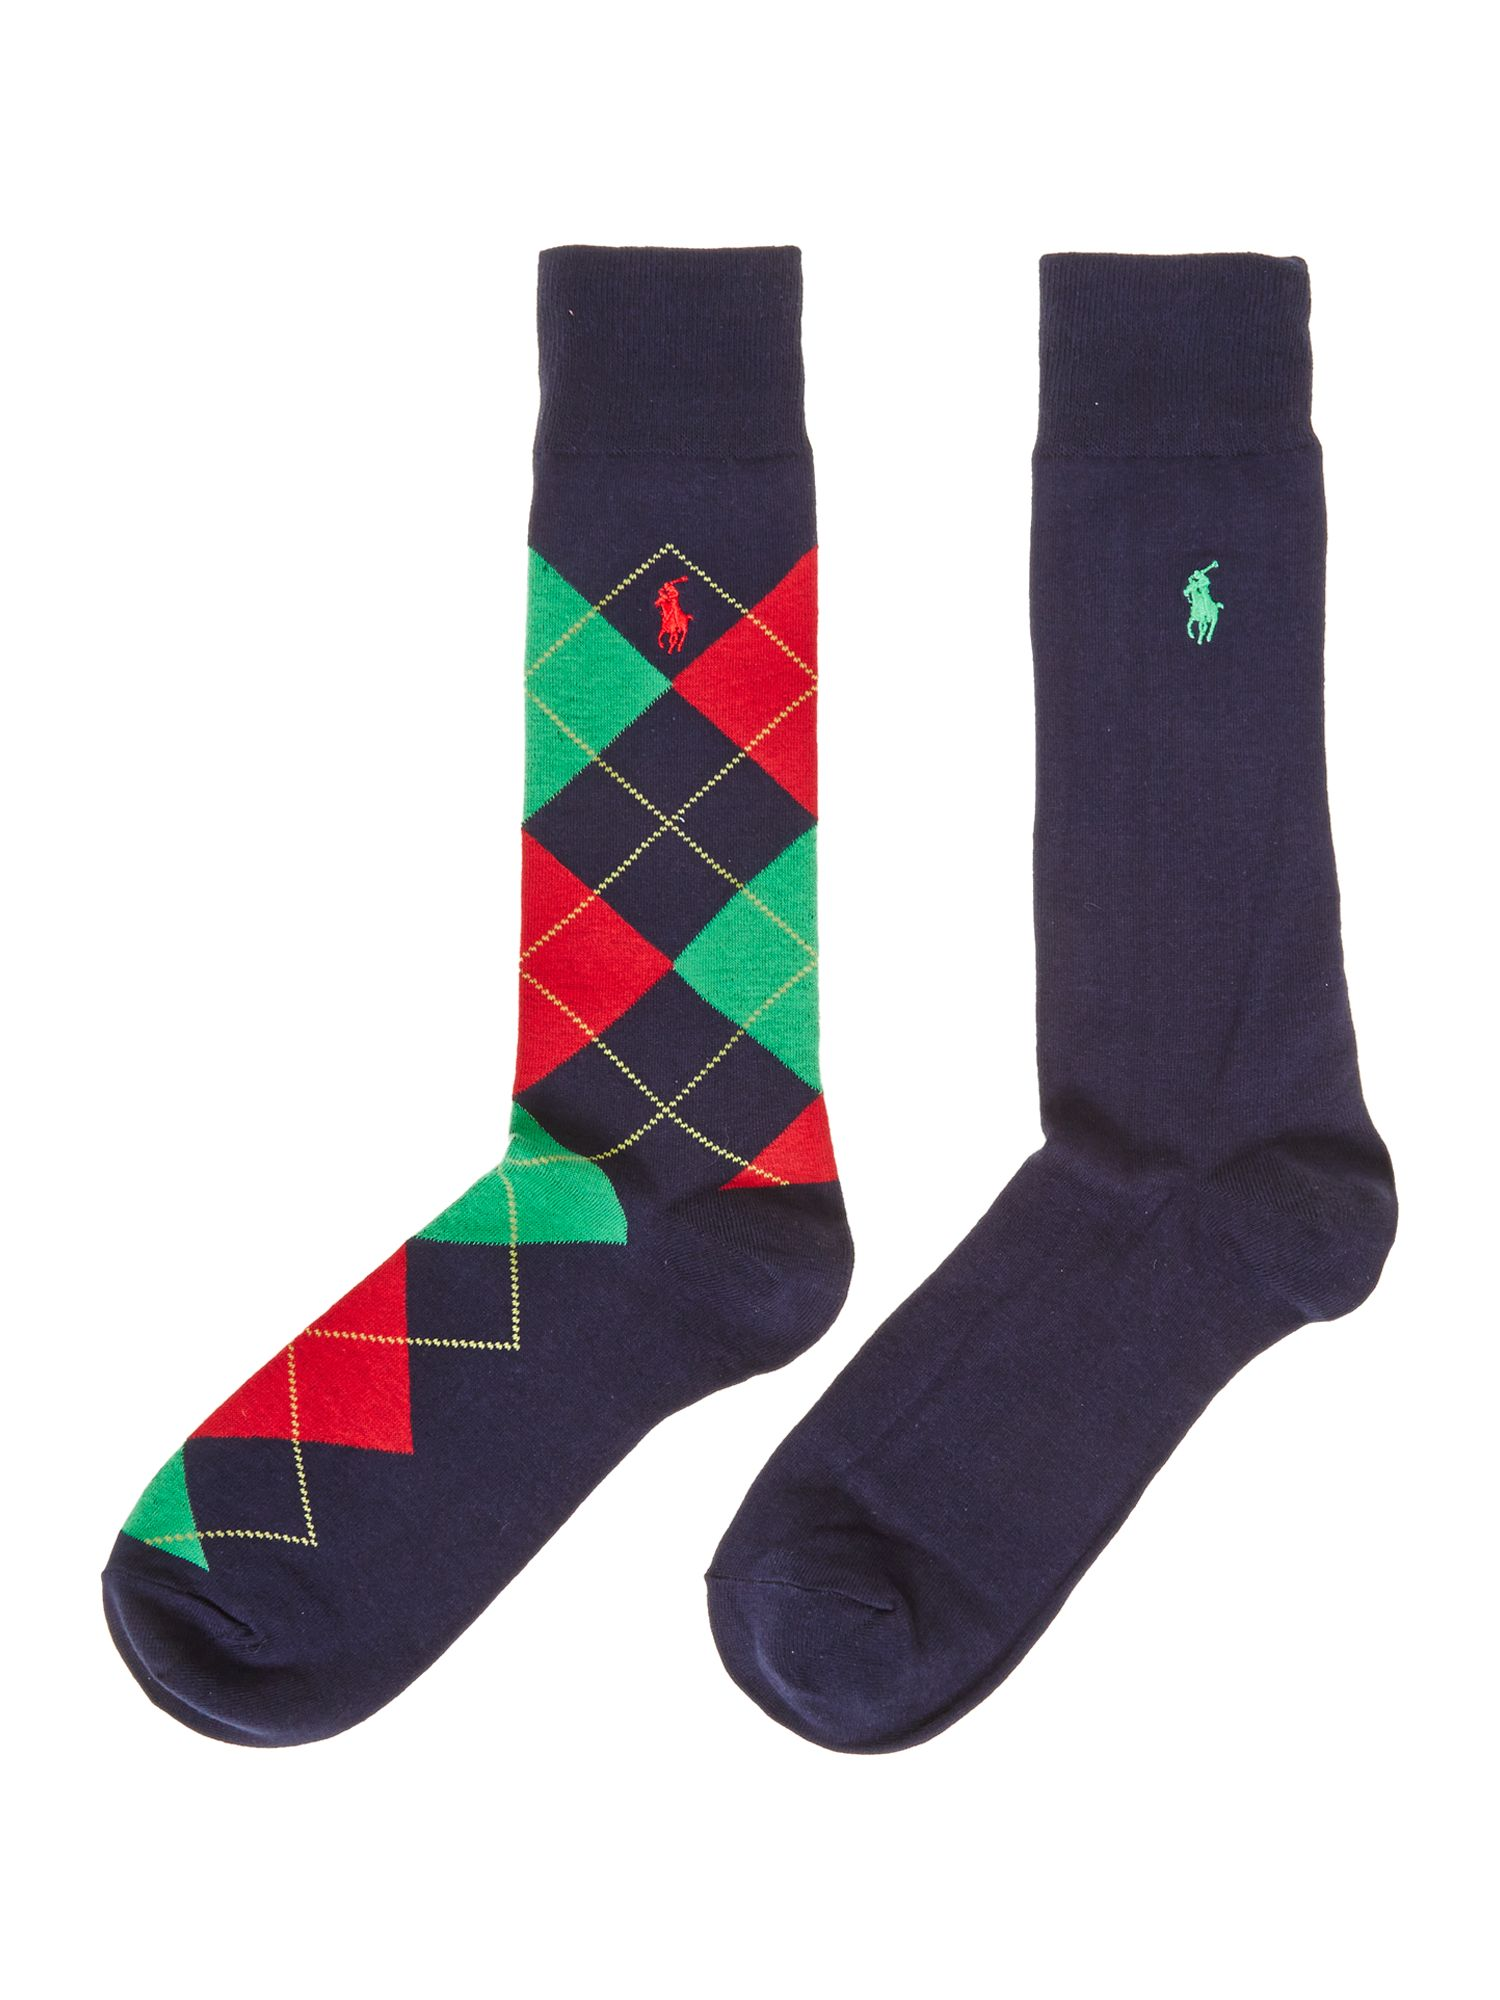 2 pack argyle sock